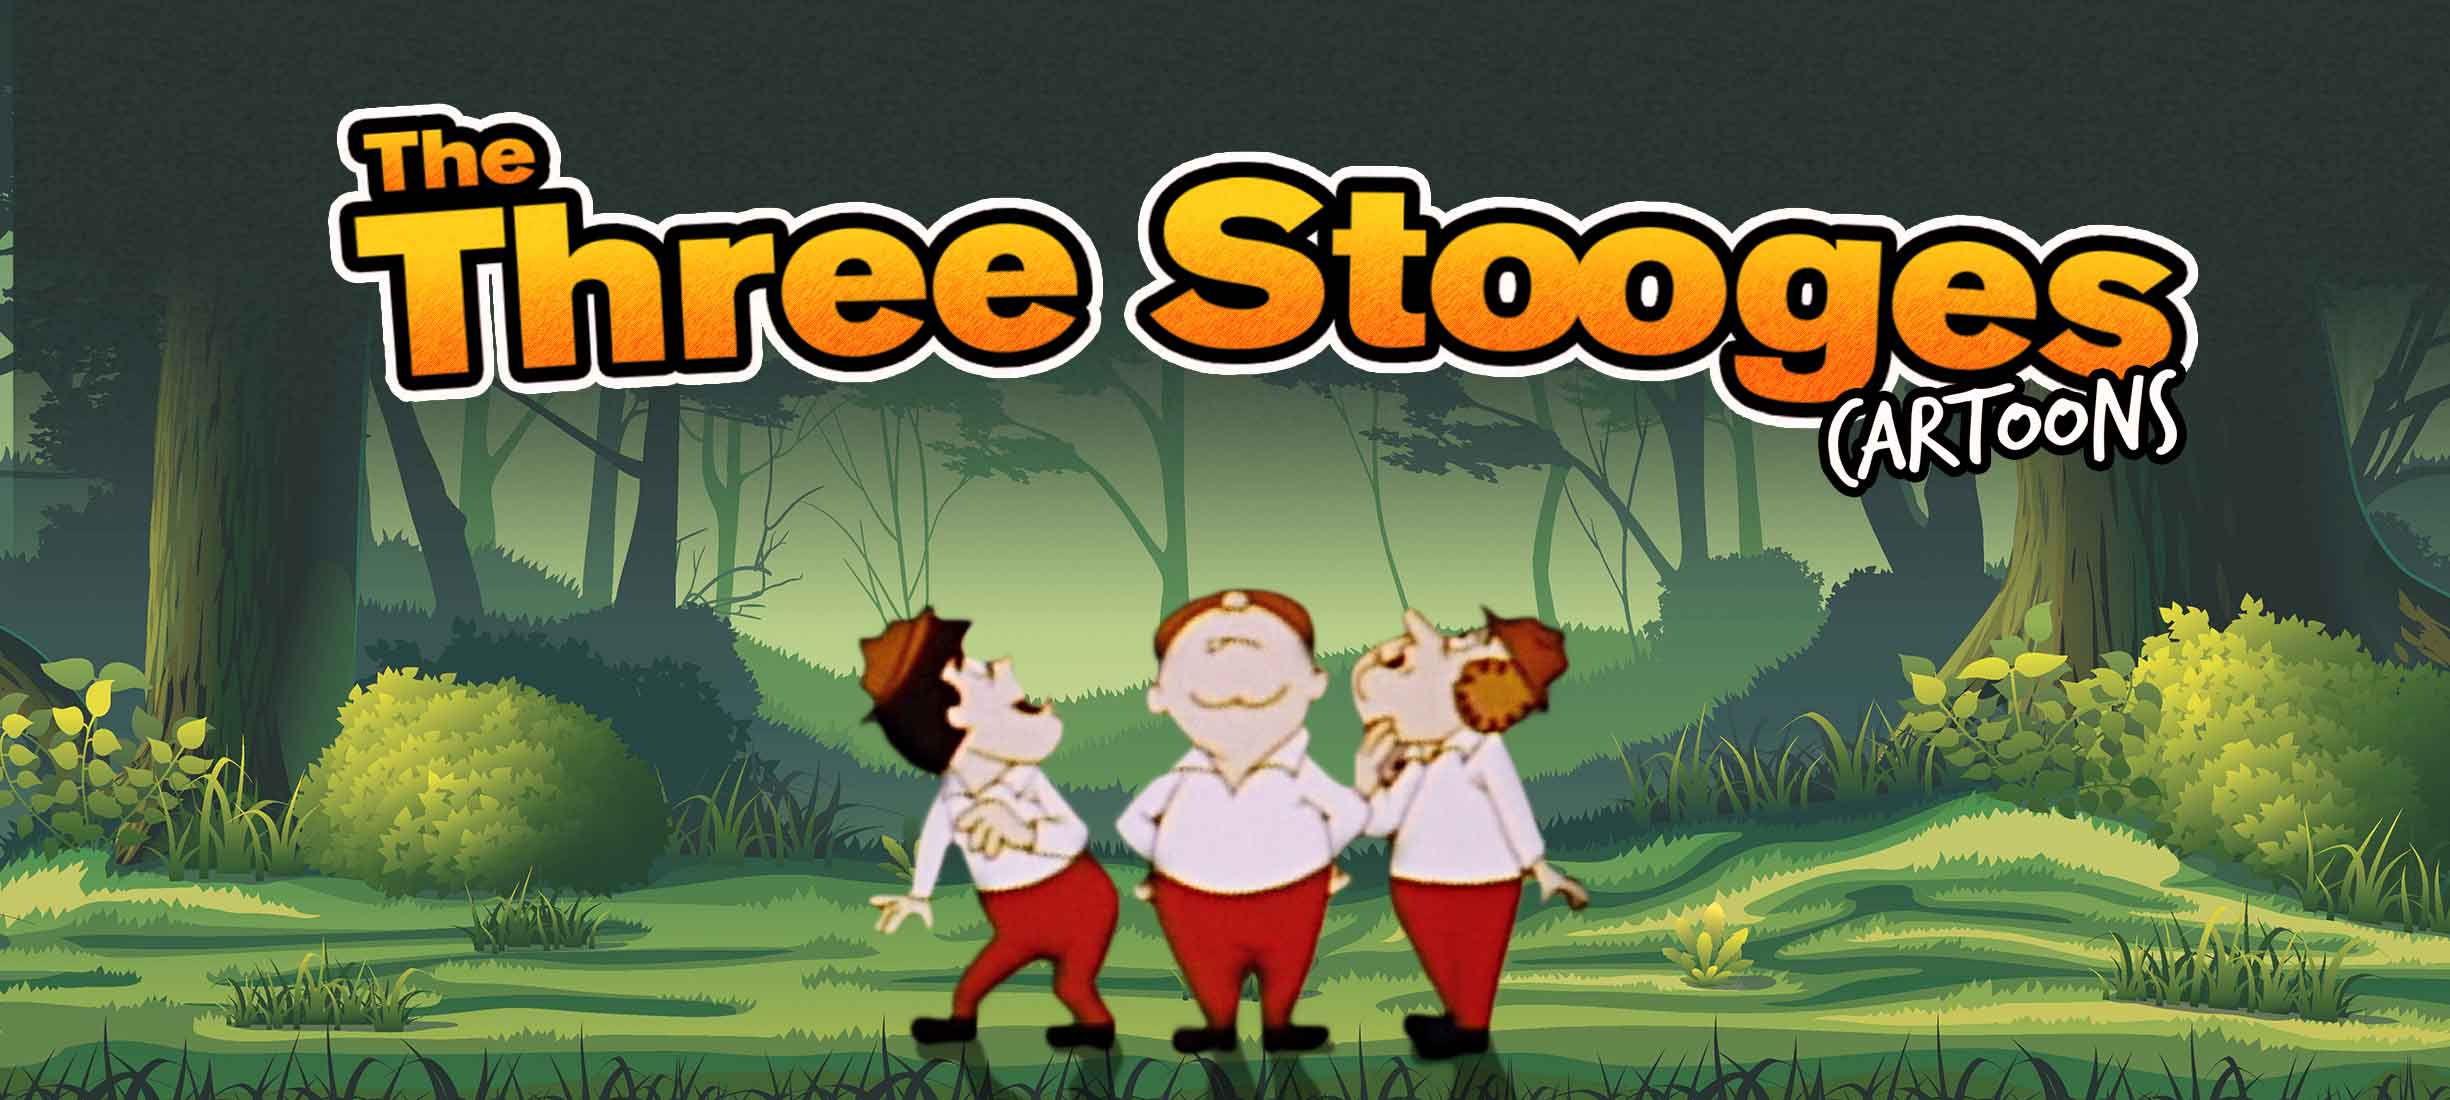 The New Three Stooges Cartoons